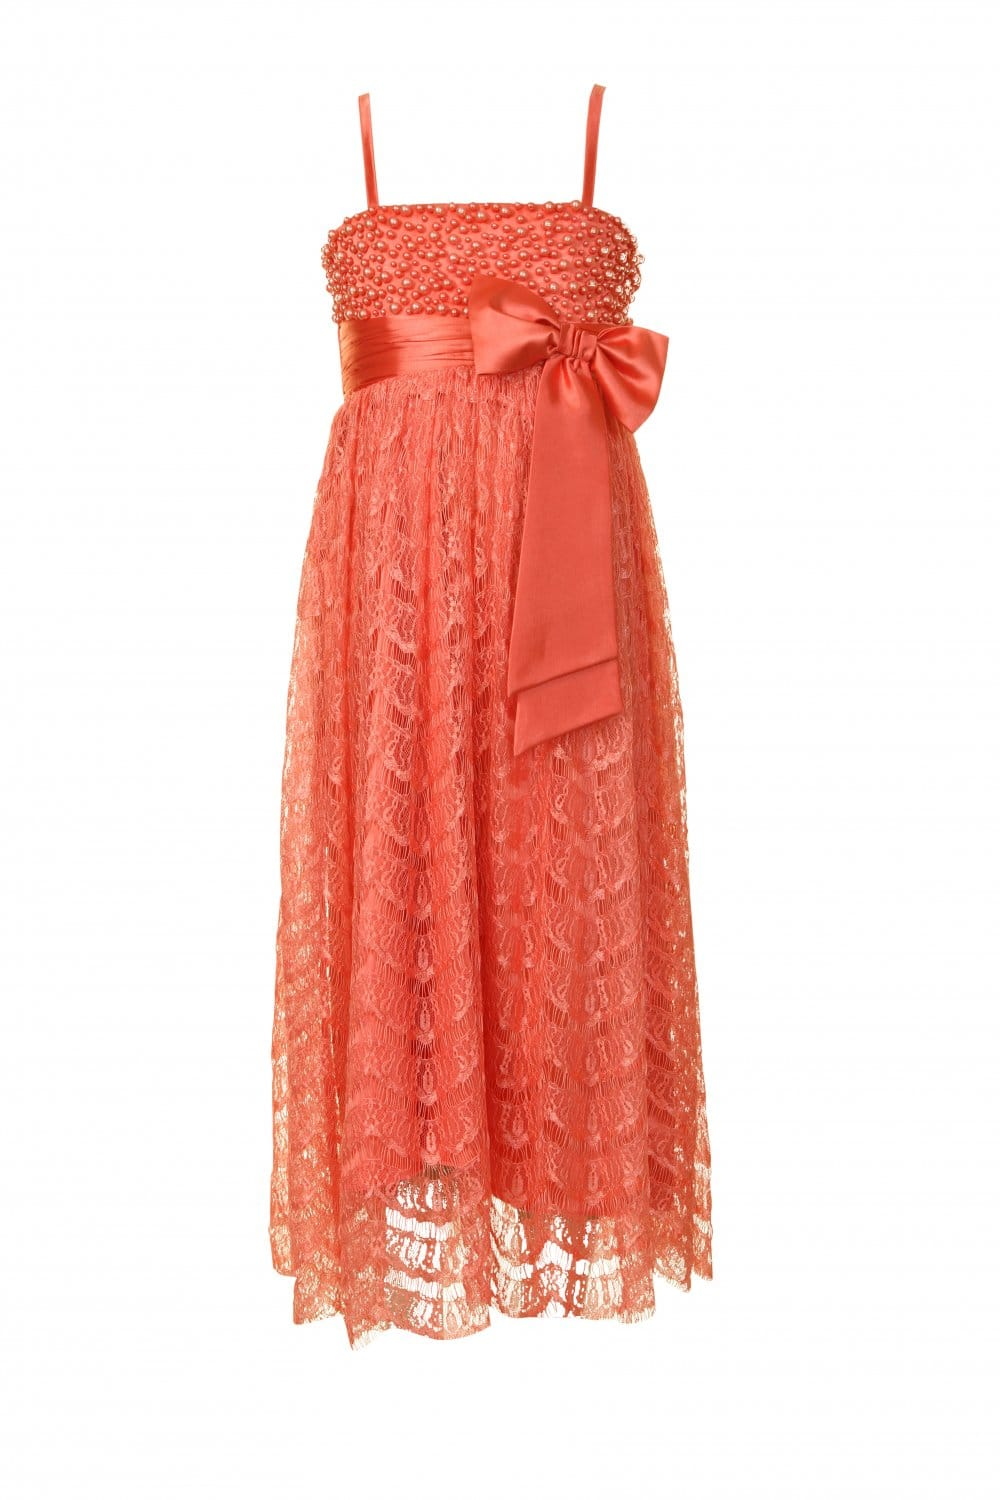 Coral Party Dresses